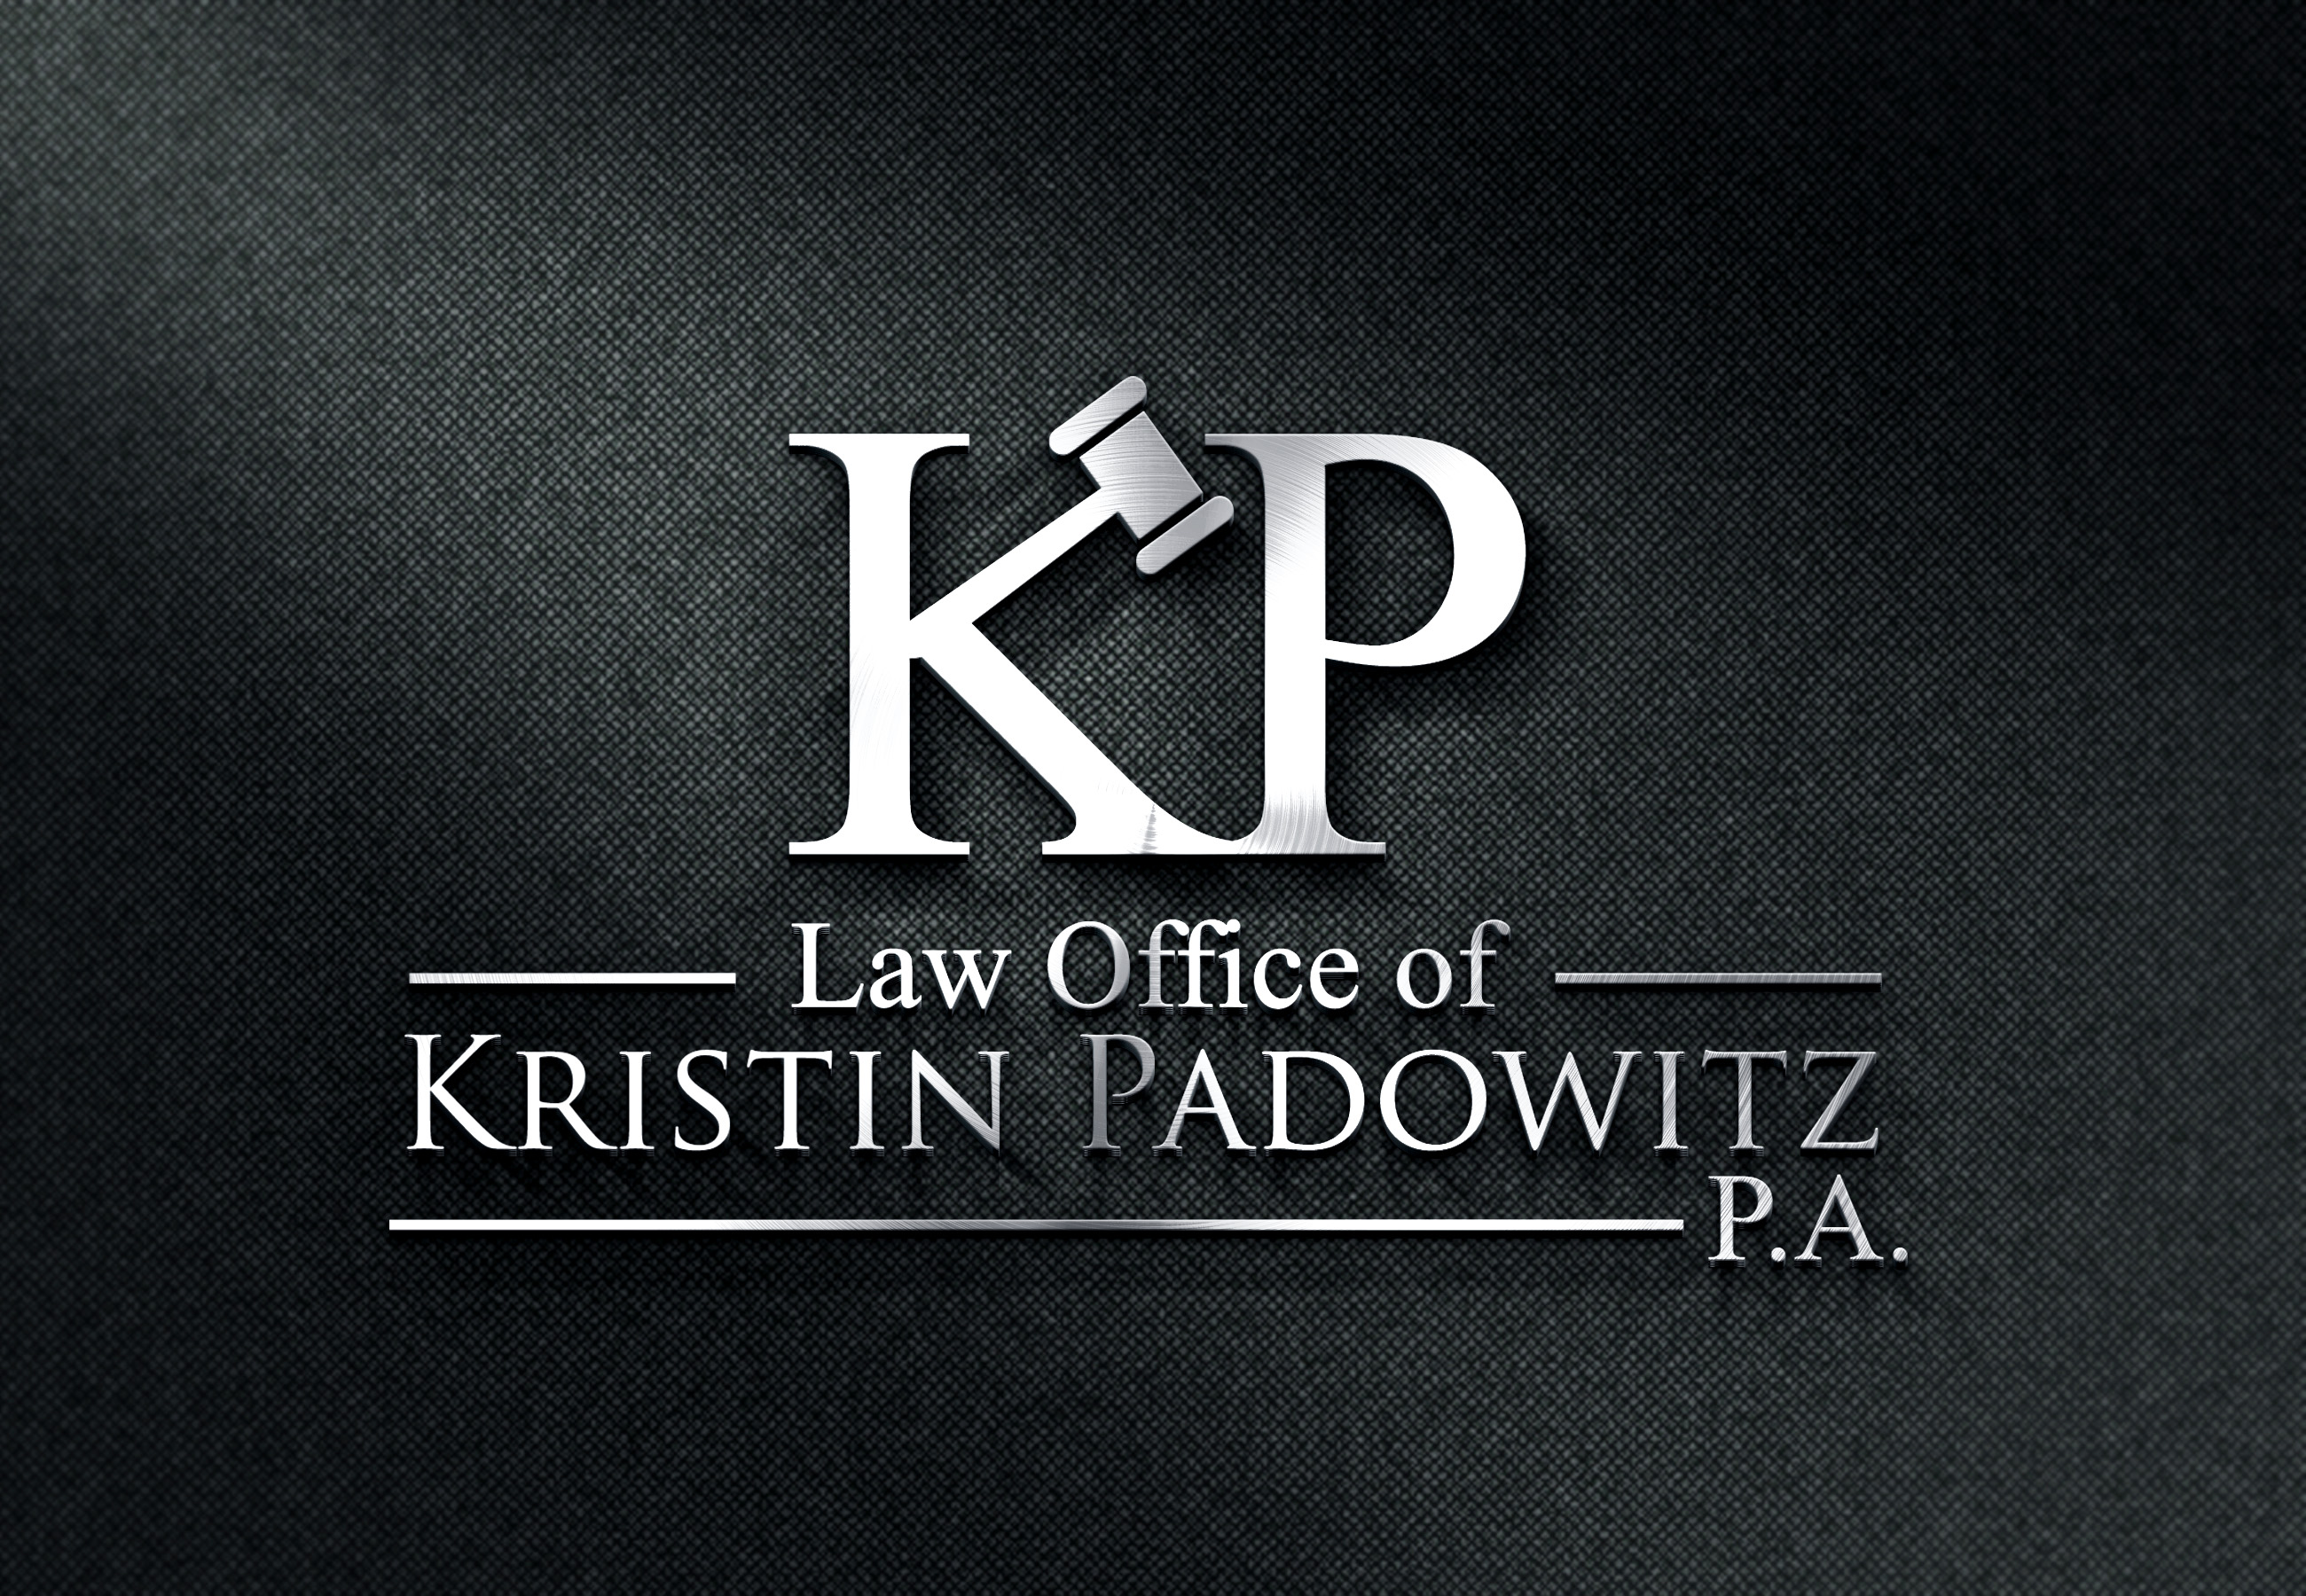 divorce lawyer in fort lauderdale | family attorney | law office of kristin padowitz, P.A.